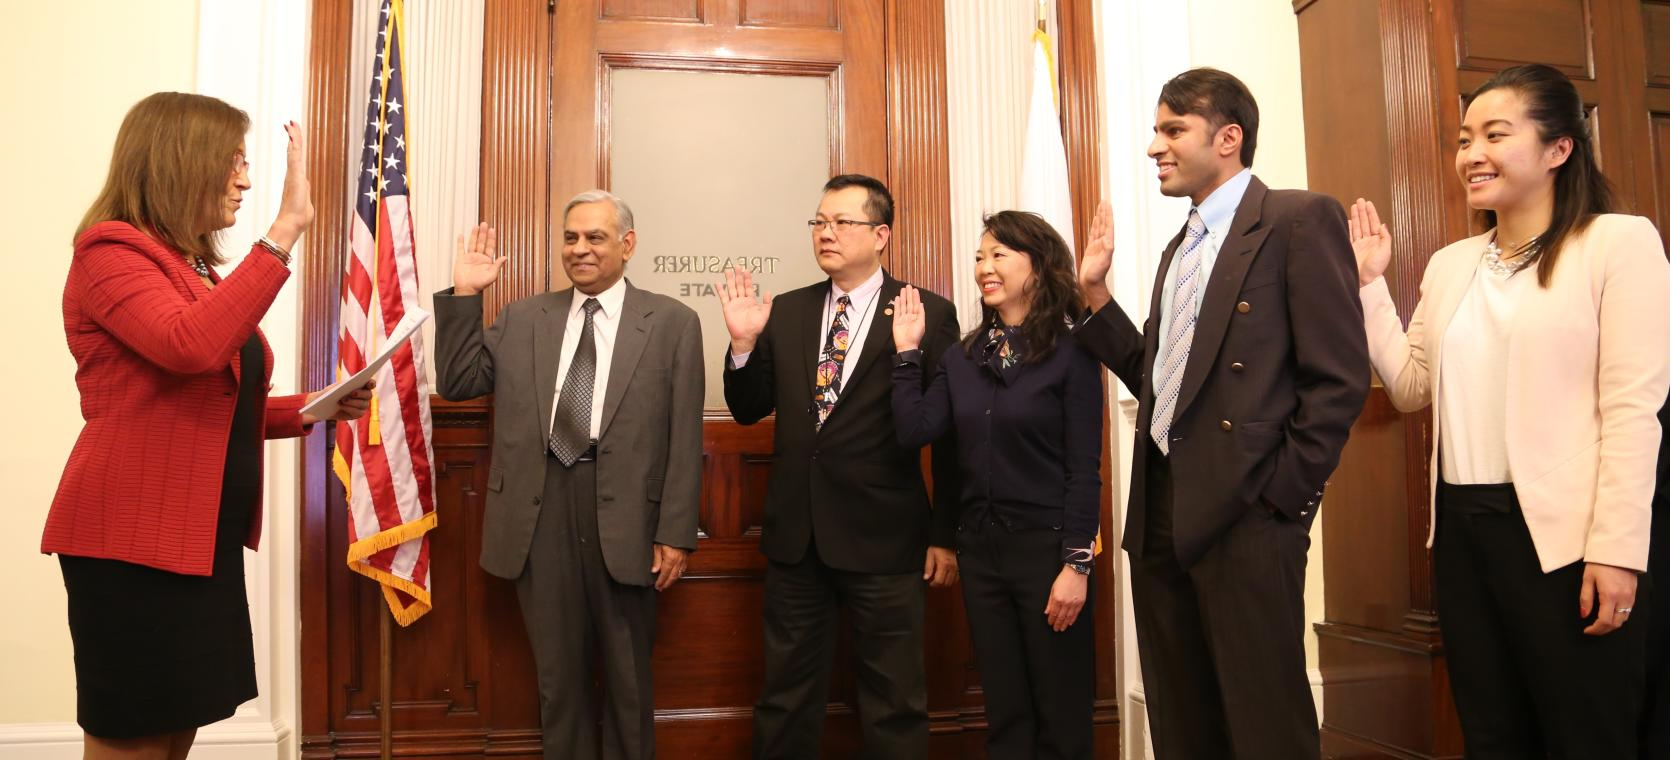 New members of the Asian American Commission were sworn in by State Treasurer Deborah Goldberg in her State House Office. The new commissioners, from left are: Anil Saigal, Gilbert Ho, Loan Dao, Janjy Ananth, and Nina Liang.